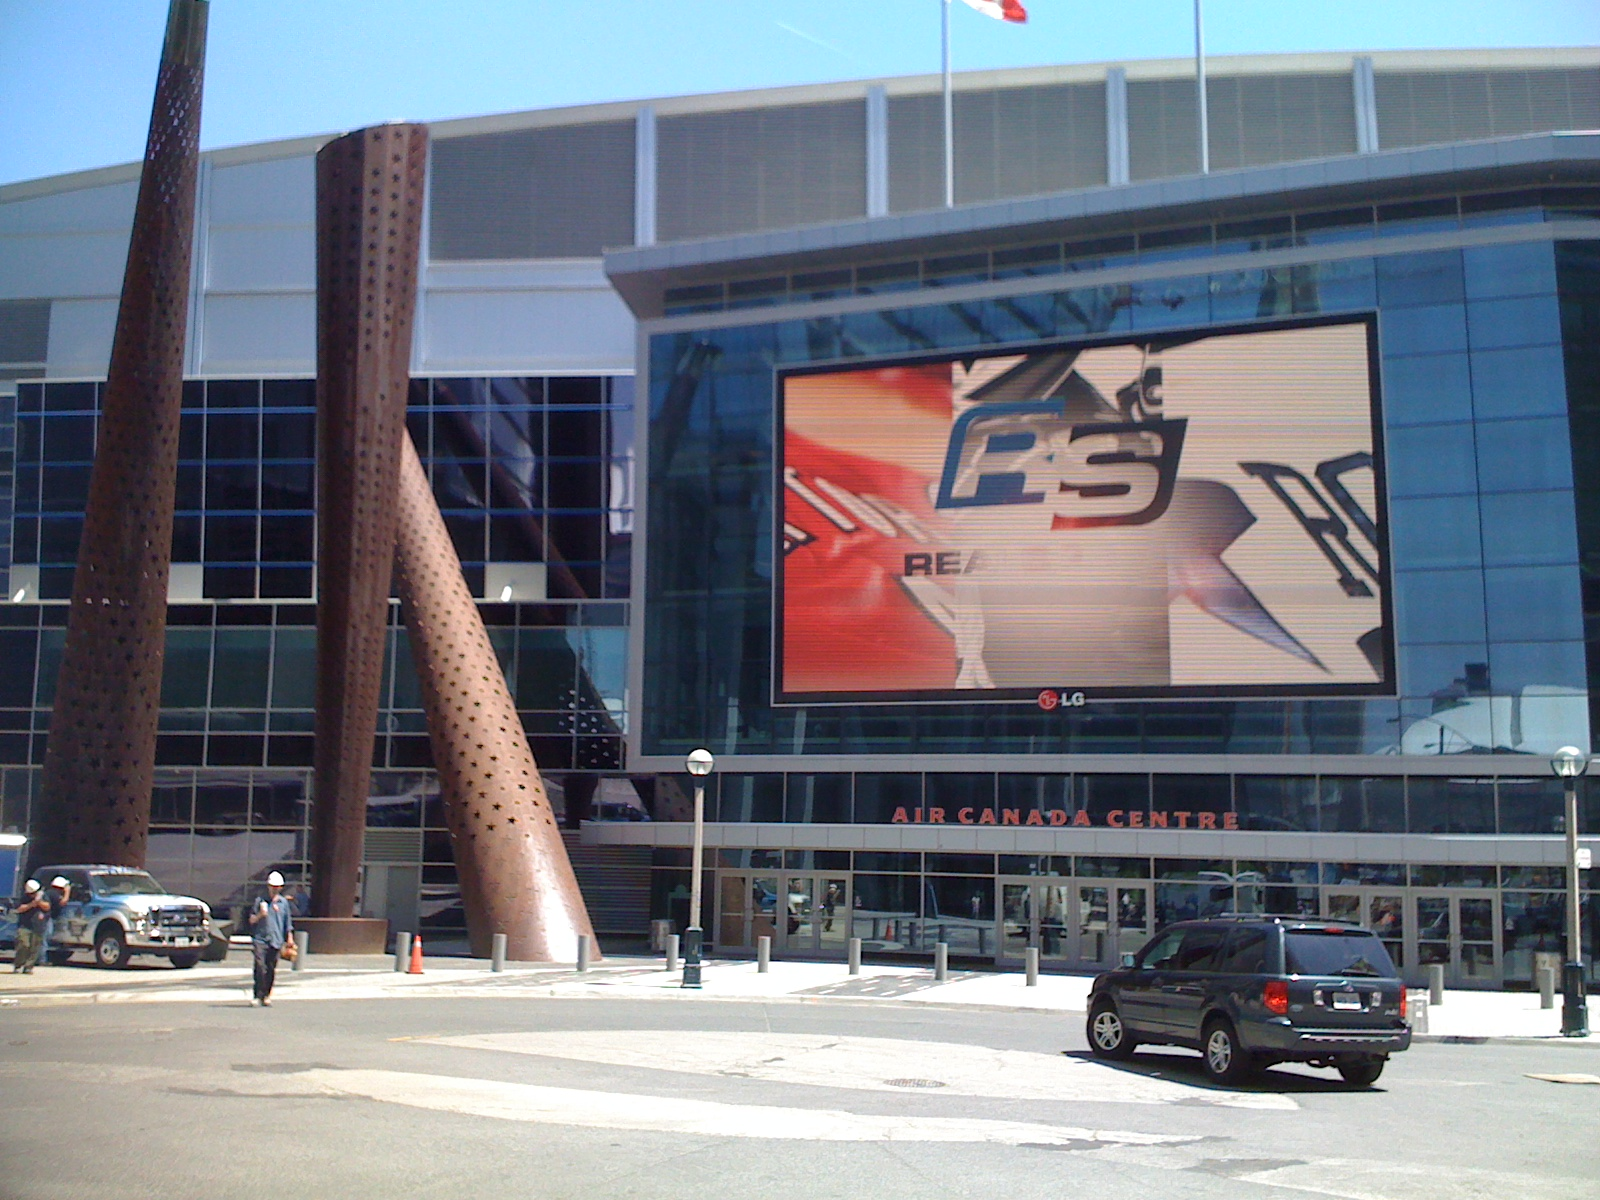 Beside the Air Canada Centre